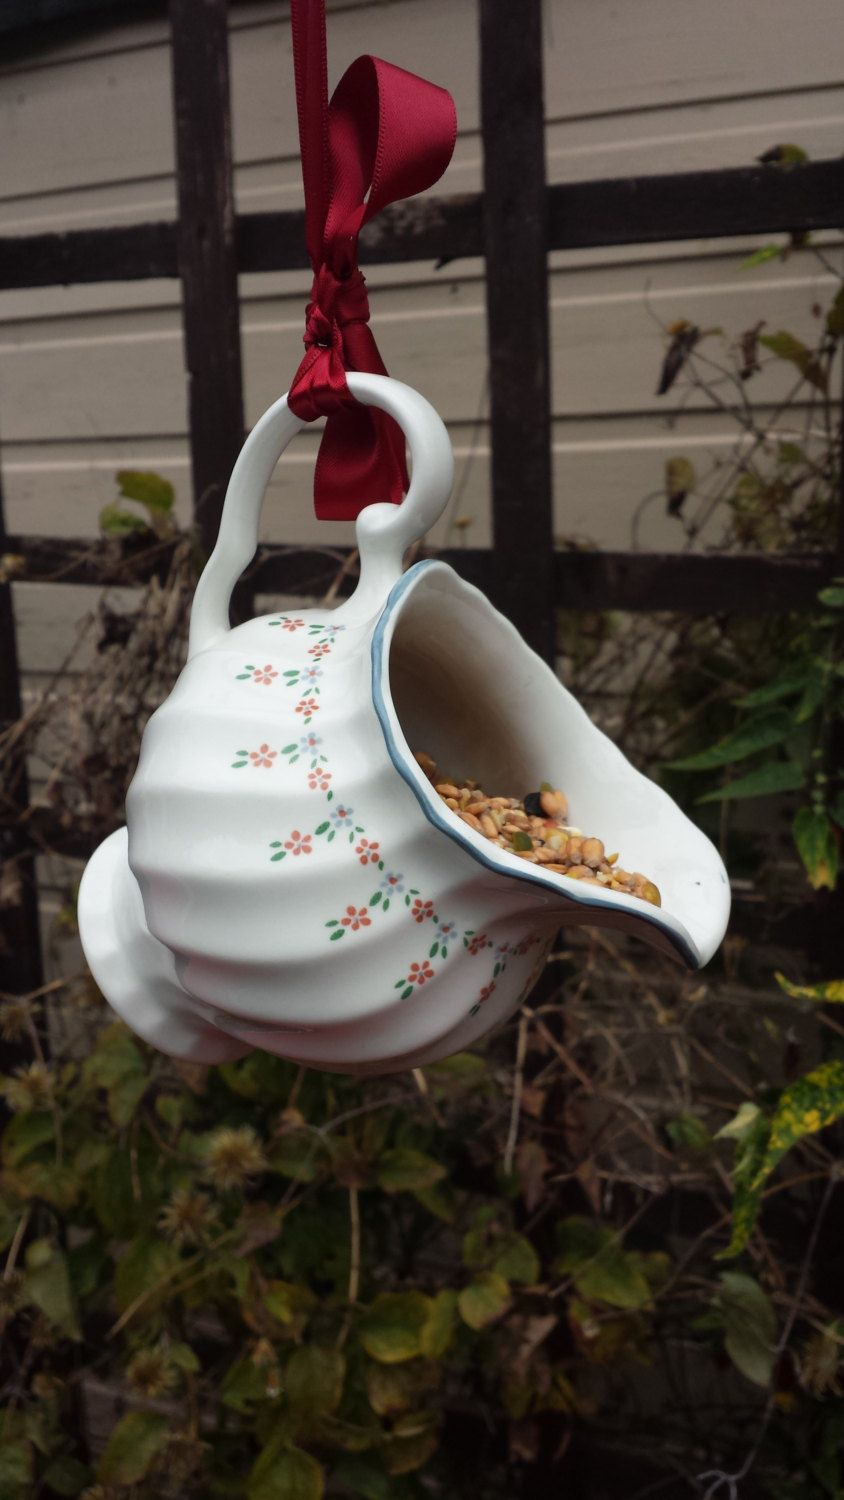 Quirky bird feeder vintage china jug up cycled garden for Quirky ornaments uk